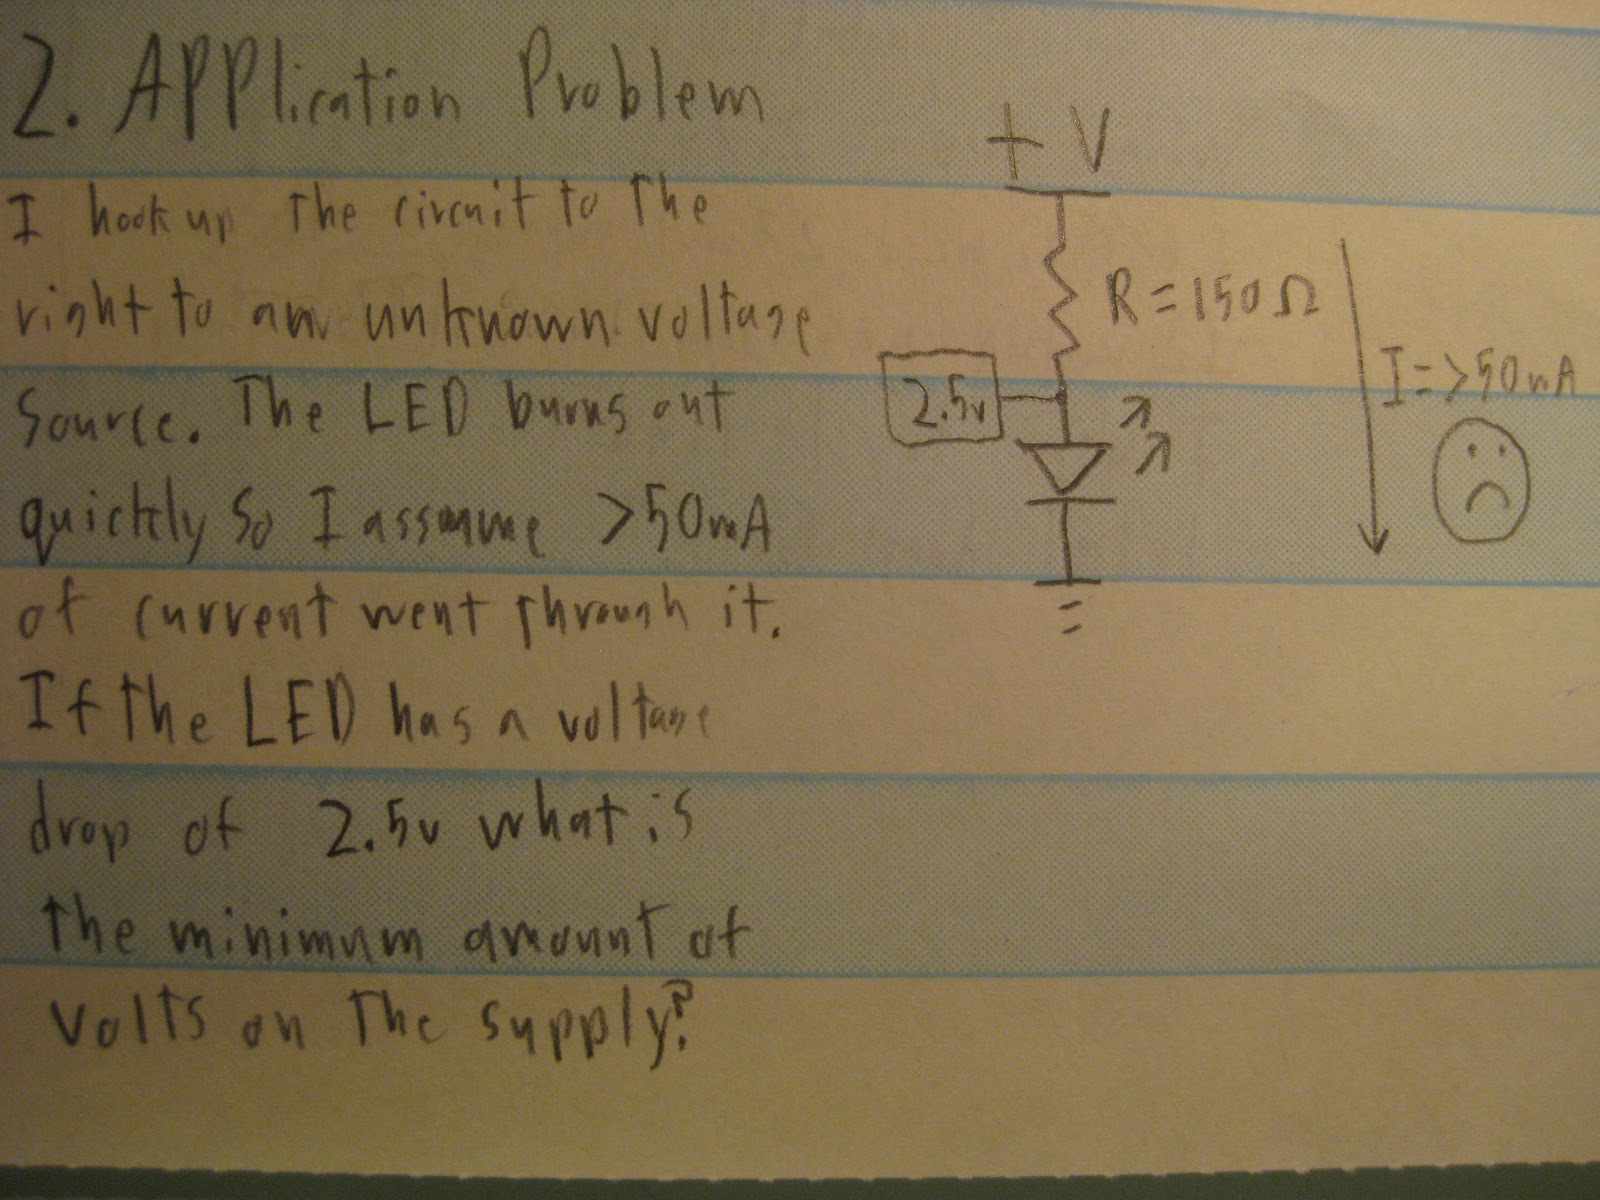 ohms law This is called ohm's law let's say, for example, that we have a circuit with the potential of 1 volt, a current of 1 amp, and resistance of 1 ohm using ohm's law we can say: let's say this represents our tank with a wide hose the amount of water in the tank is defined as 1 volt and the.